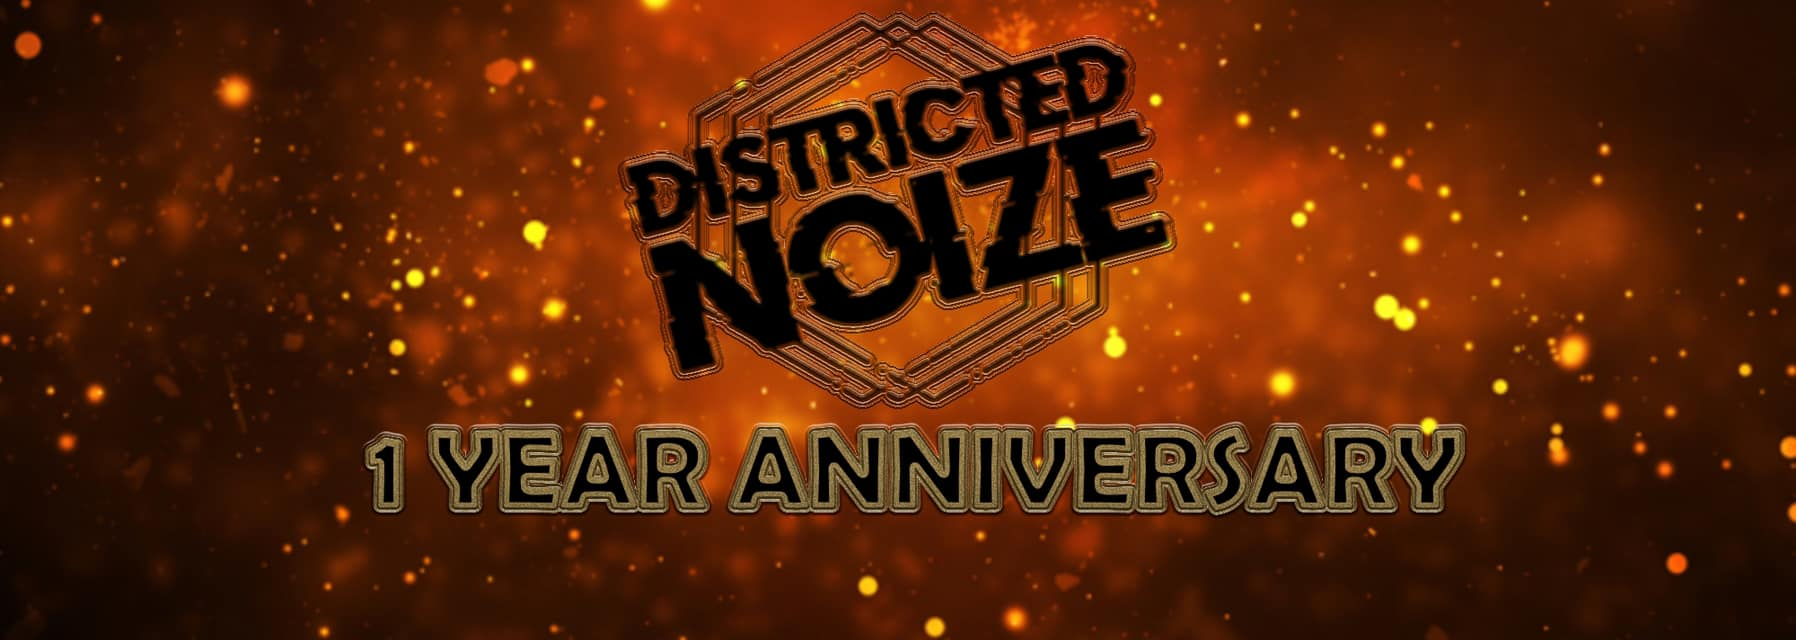 Districted Noize pres. 1 year anniversary am 17. January 2020 @ Black Market.